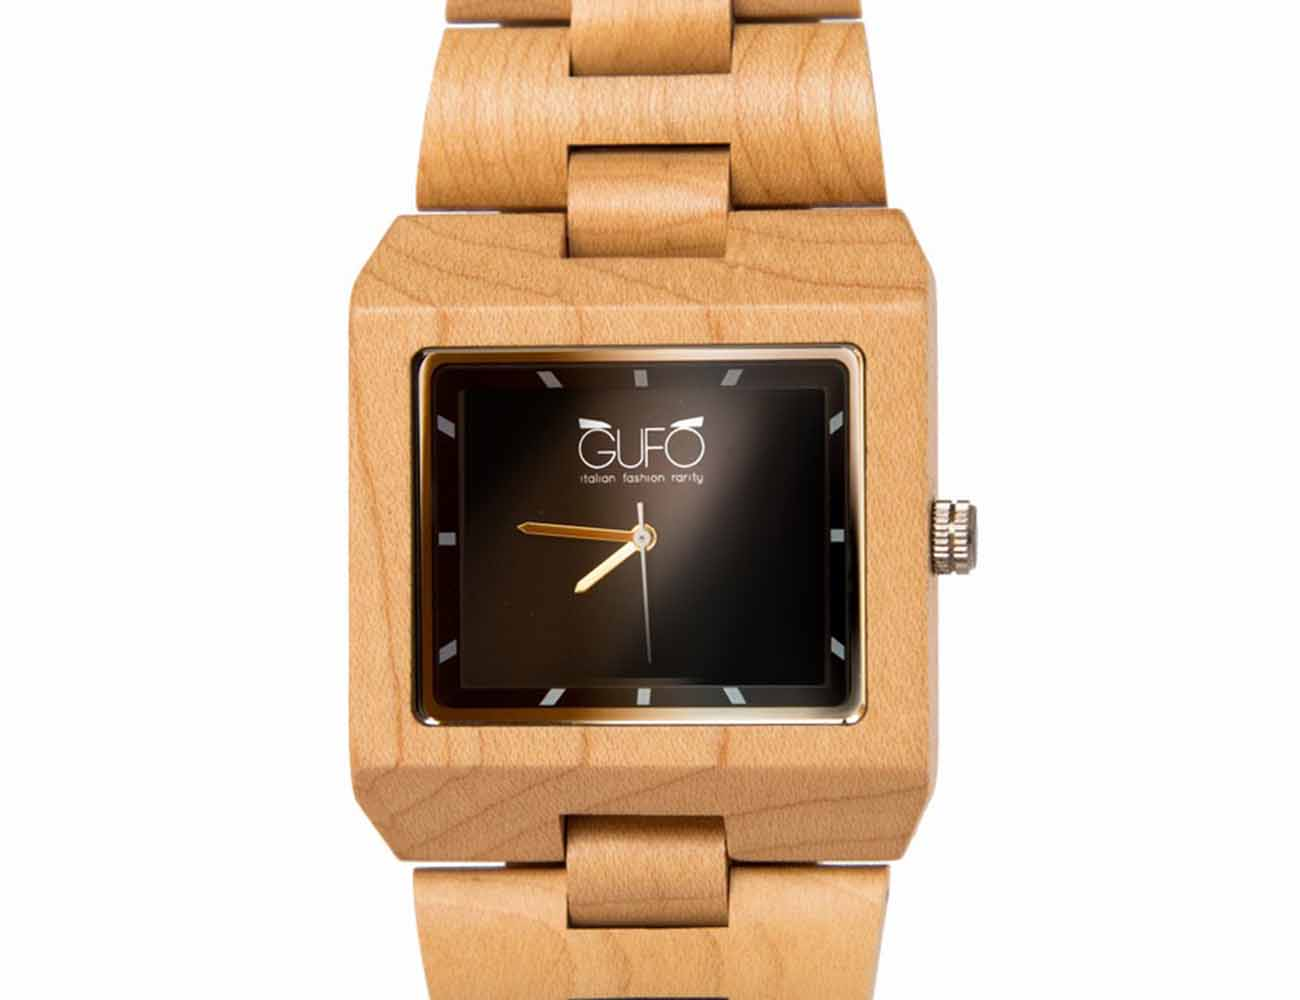 Black Stone Wooden Wrist Watch by GUFO Italy